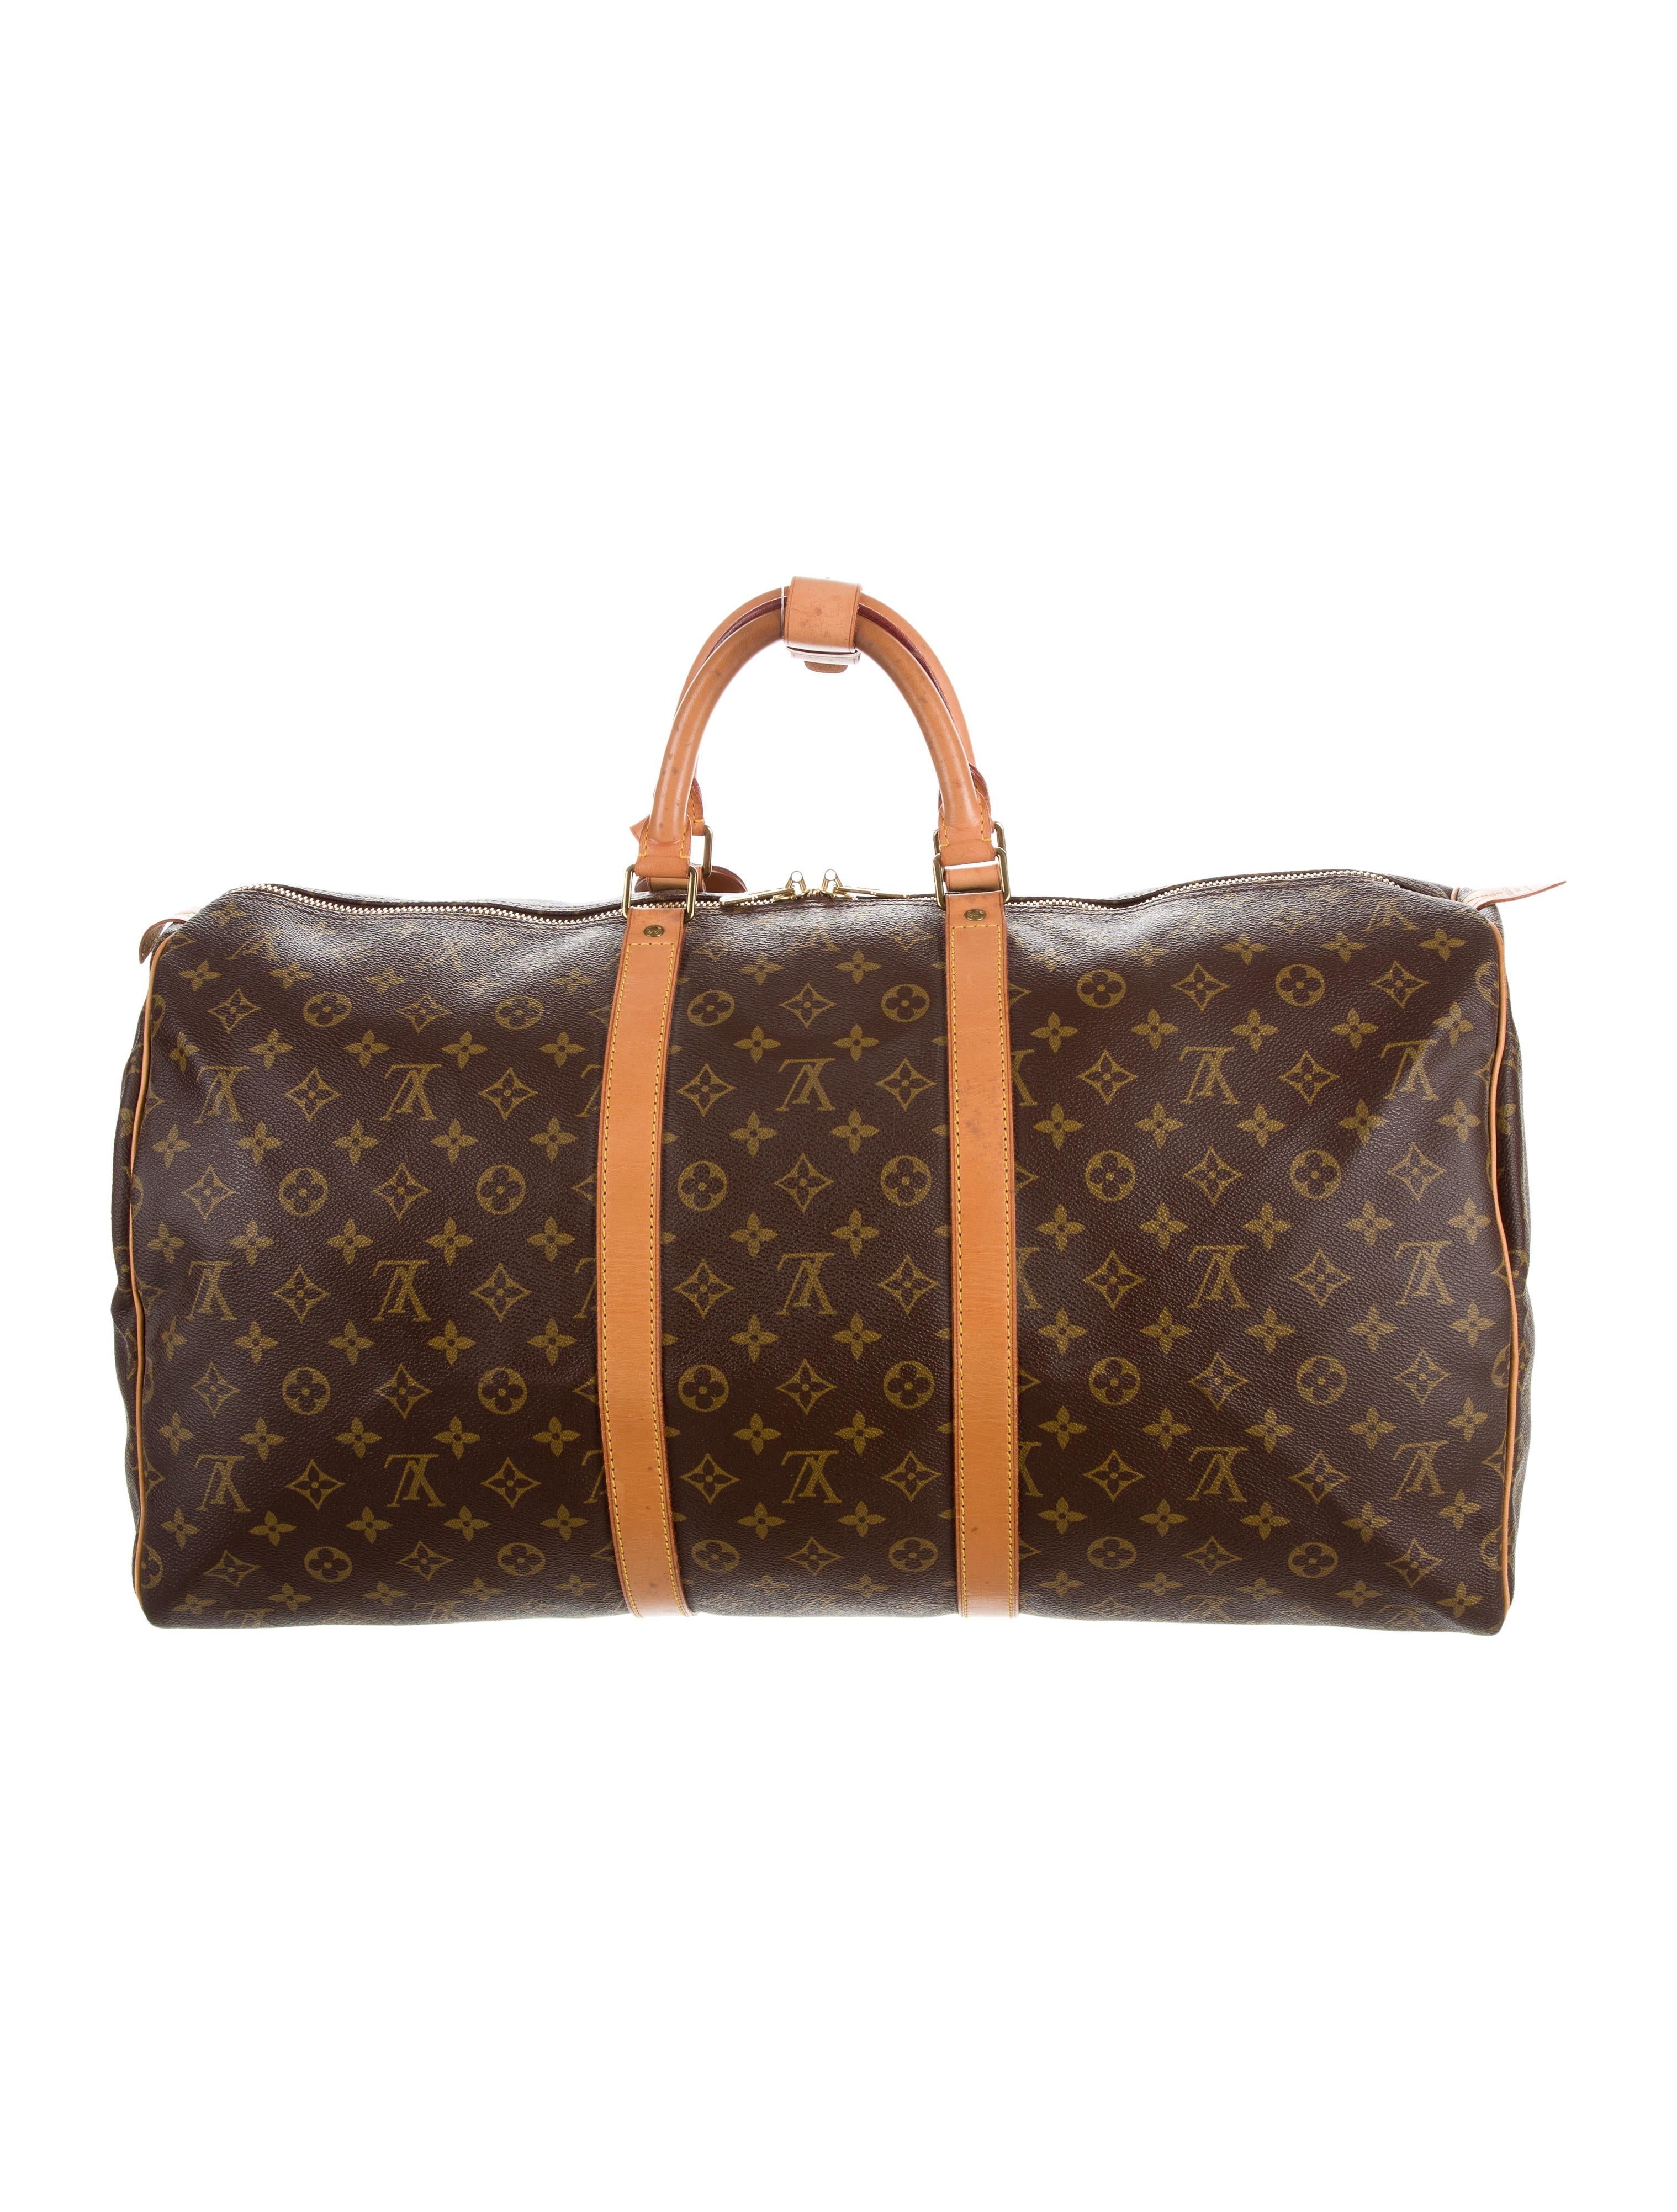 louis vuitton monogram keepall 55 bags lou116276 the realreal. Black Bedroom Furniture Sets. Home Design Ideas